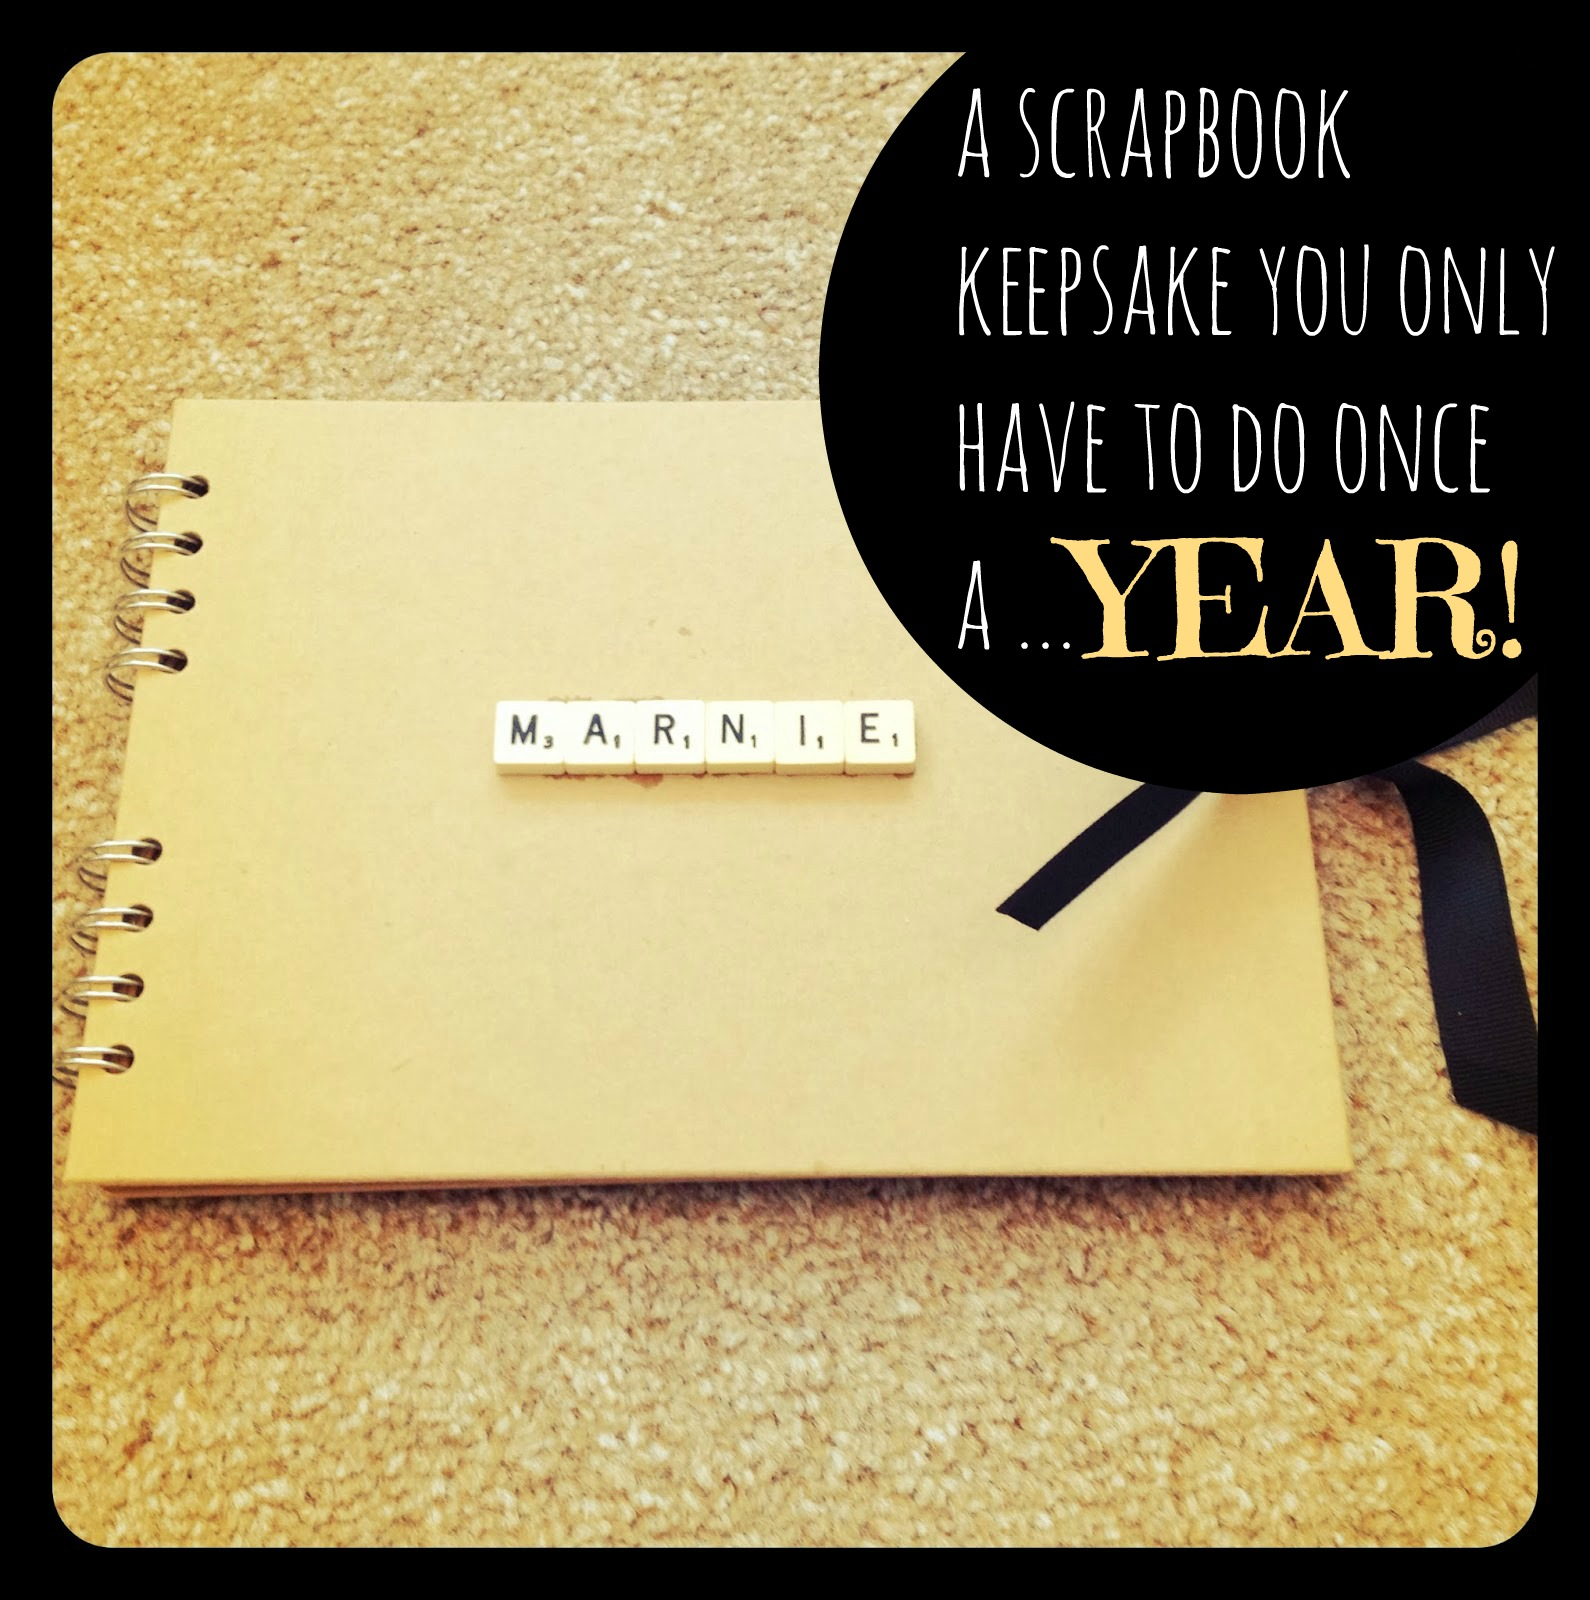 Easy baby scrapbook ideas - V I Busy Bees A Scrapbook Photograph Idea For Time Pressed Mamas That You Do Once A Year